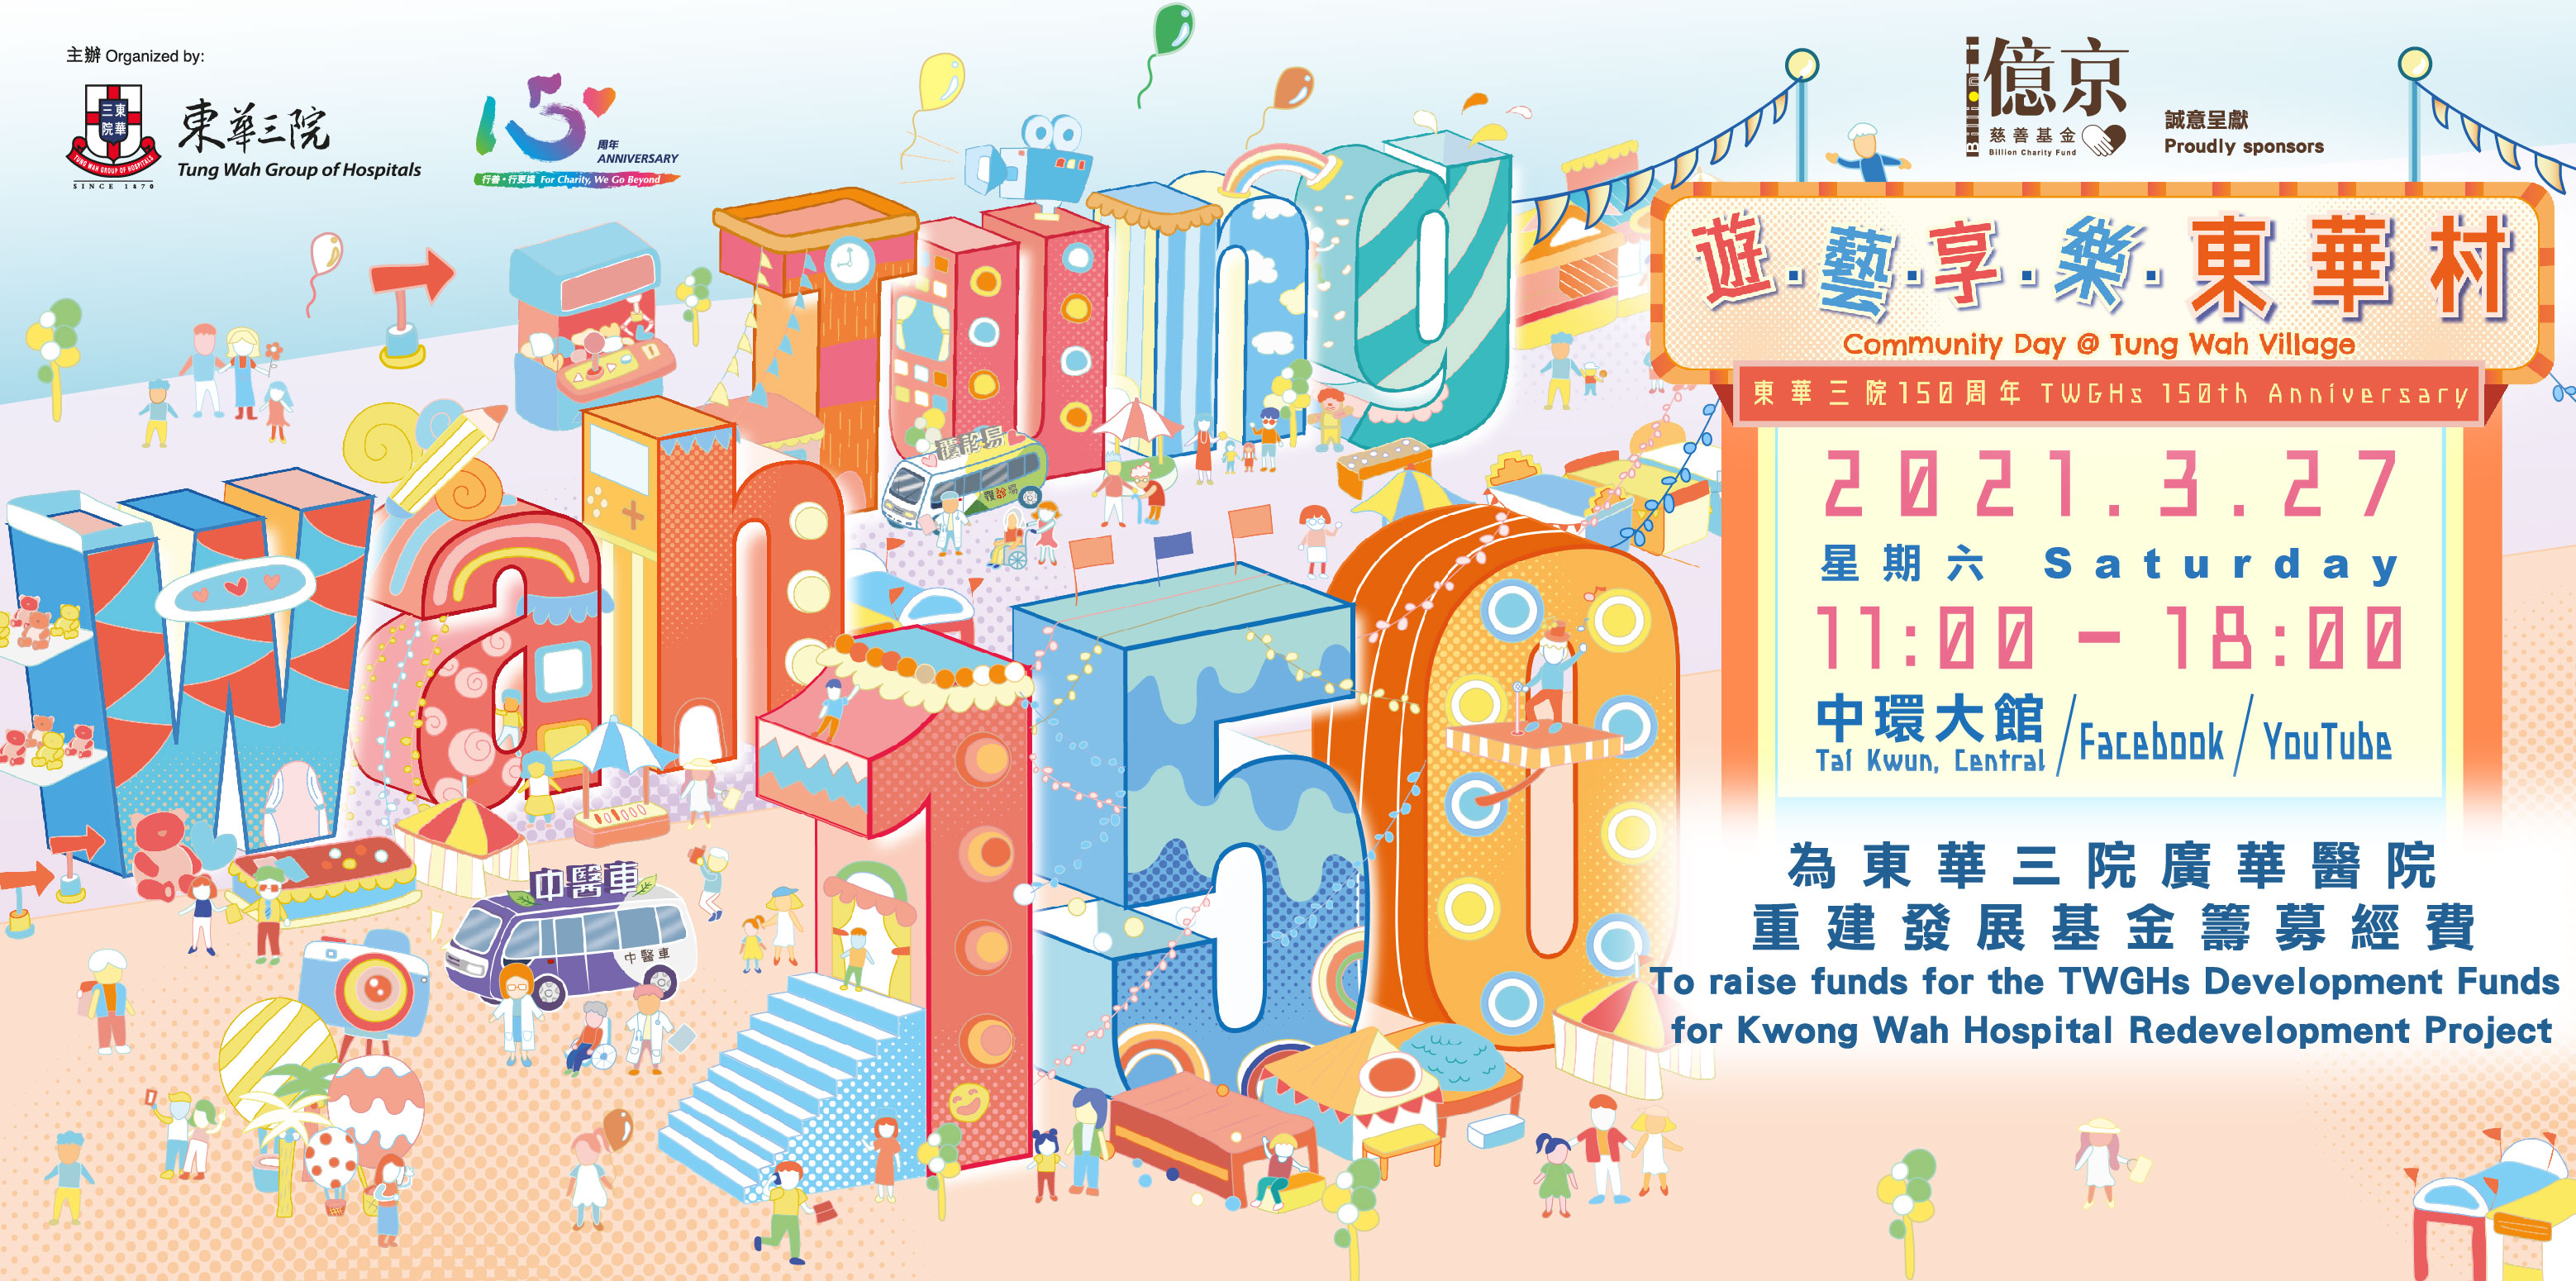 Billion Charity Fund Proudly sponsors: TWGHs 150th Anniversary Community Day @ Tung Wah Village